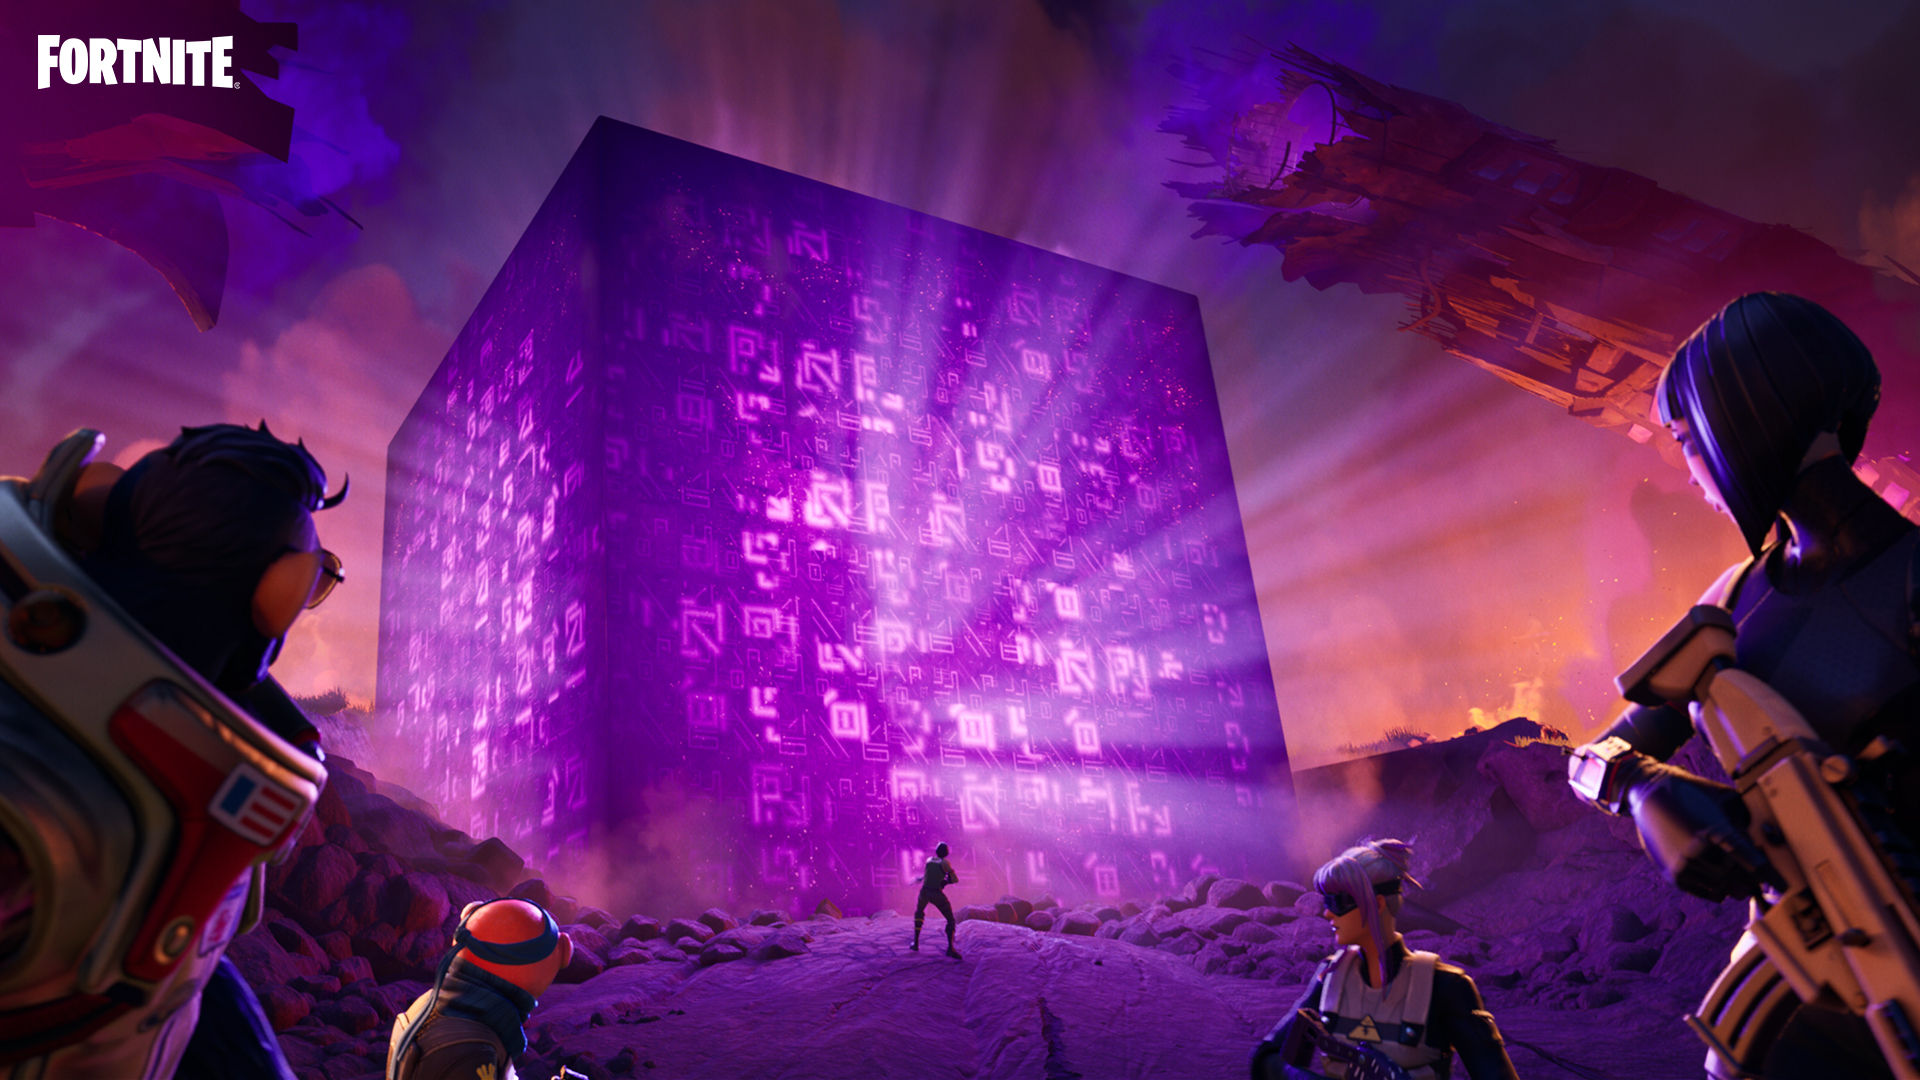 Fortnite players standing in front of the Cube